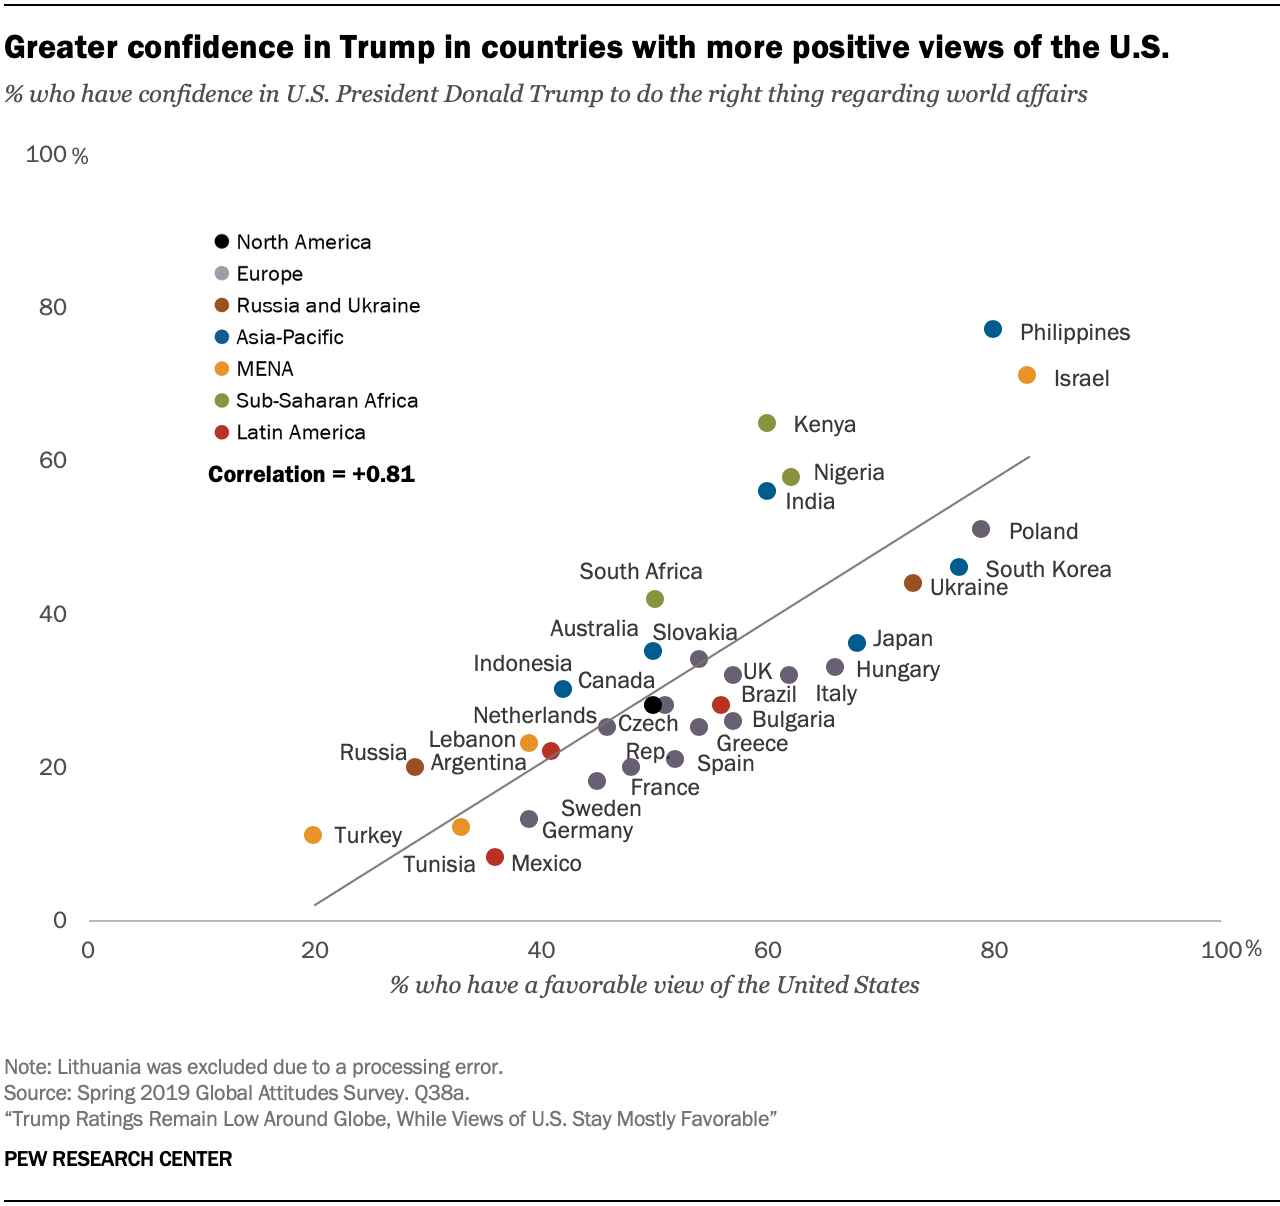 Greater confidence in Trump in countries with more positive views of the U.S.